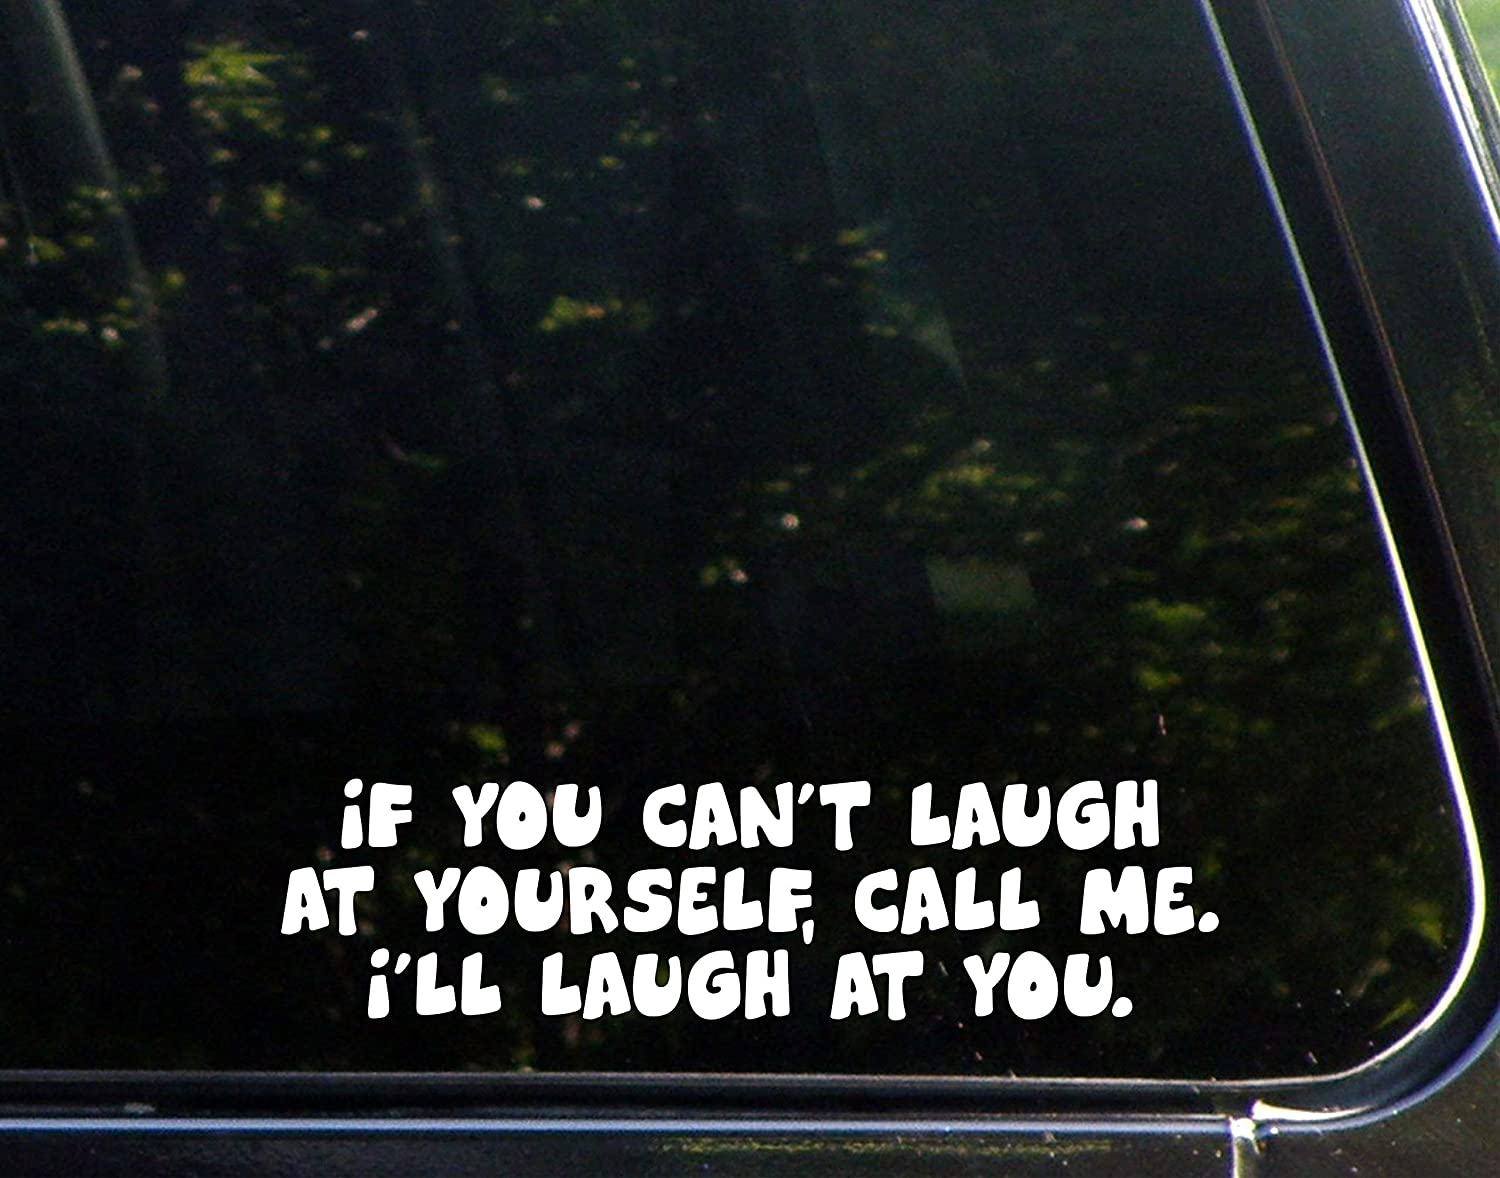 """Diamond Graphics If You Can't Laugh at Yourself, Call Me I'll Laugh at You (8-3/4"""" X 2-1/4"""") Die Cut Decal Bumper Sticker for Windows, Cars, Trucks, Laptops"""